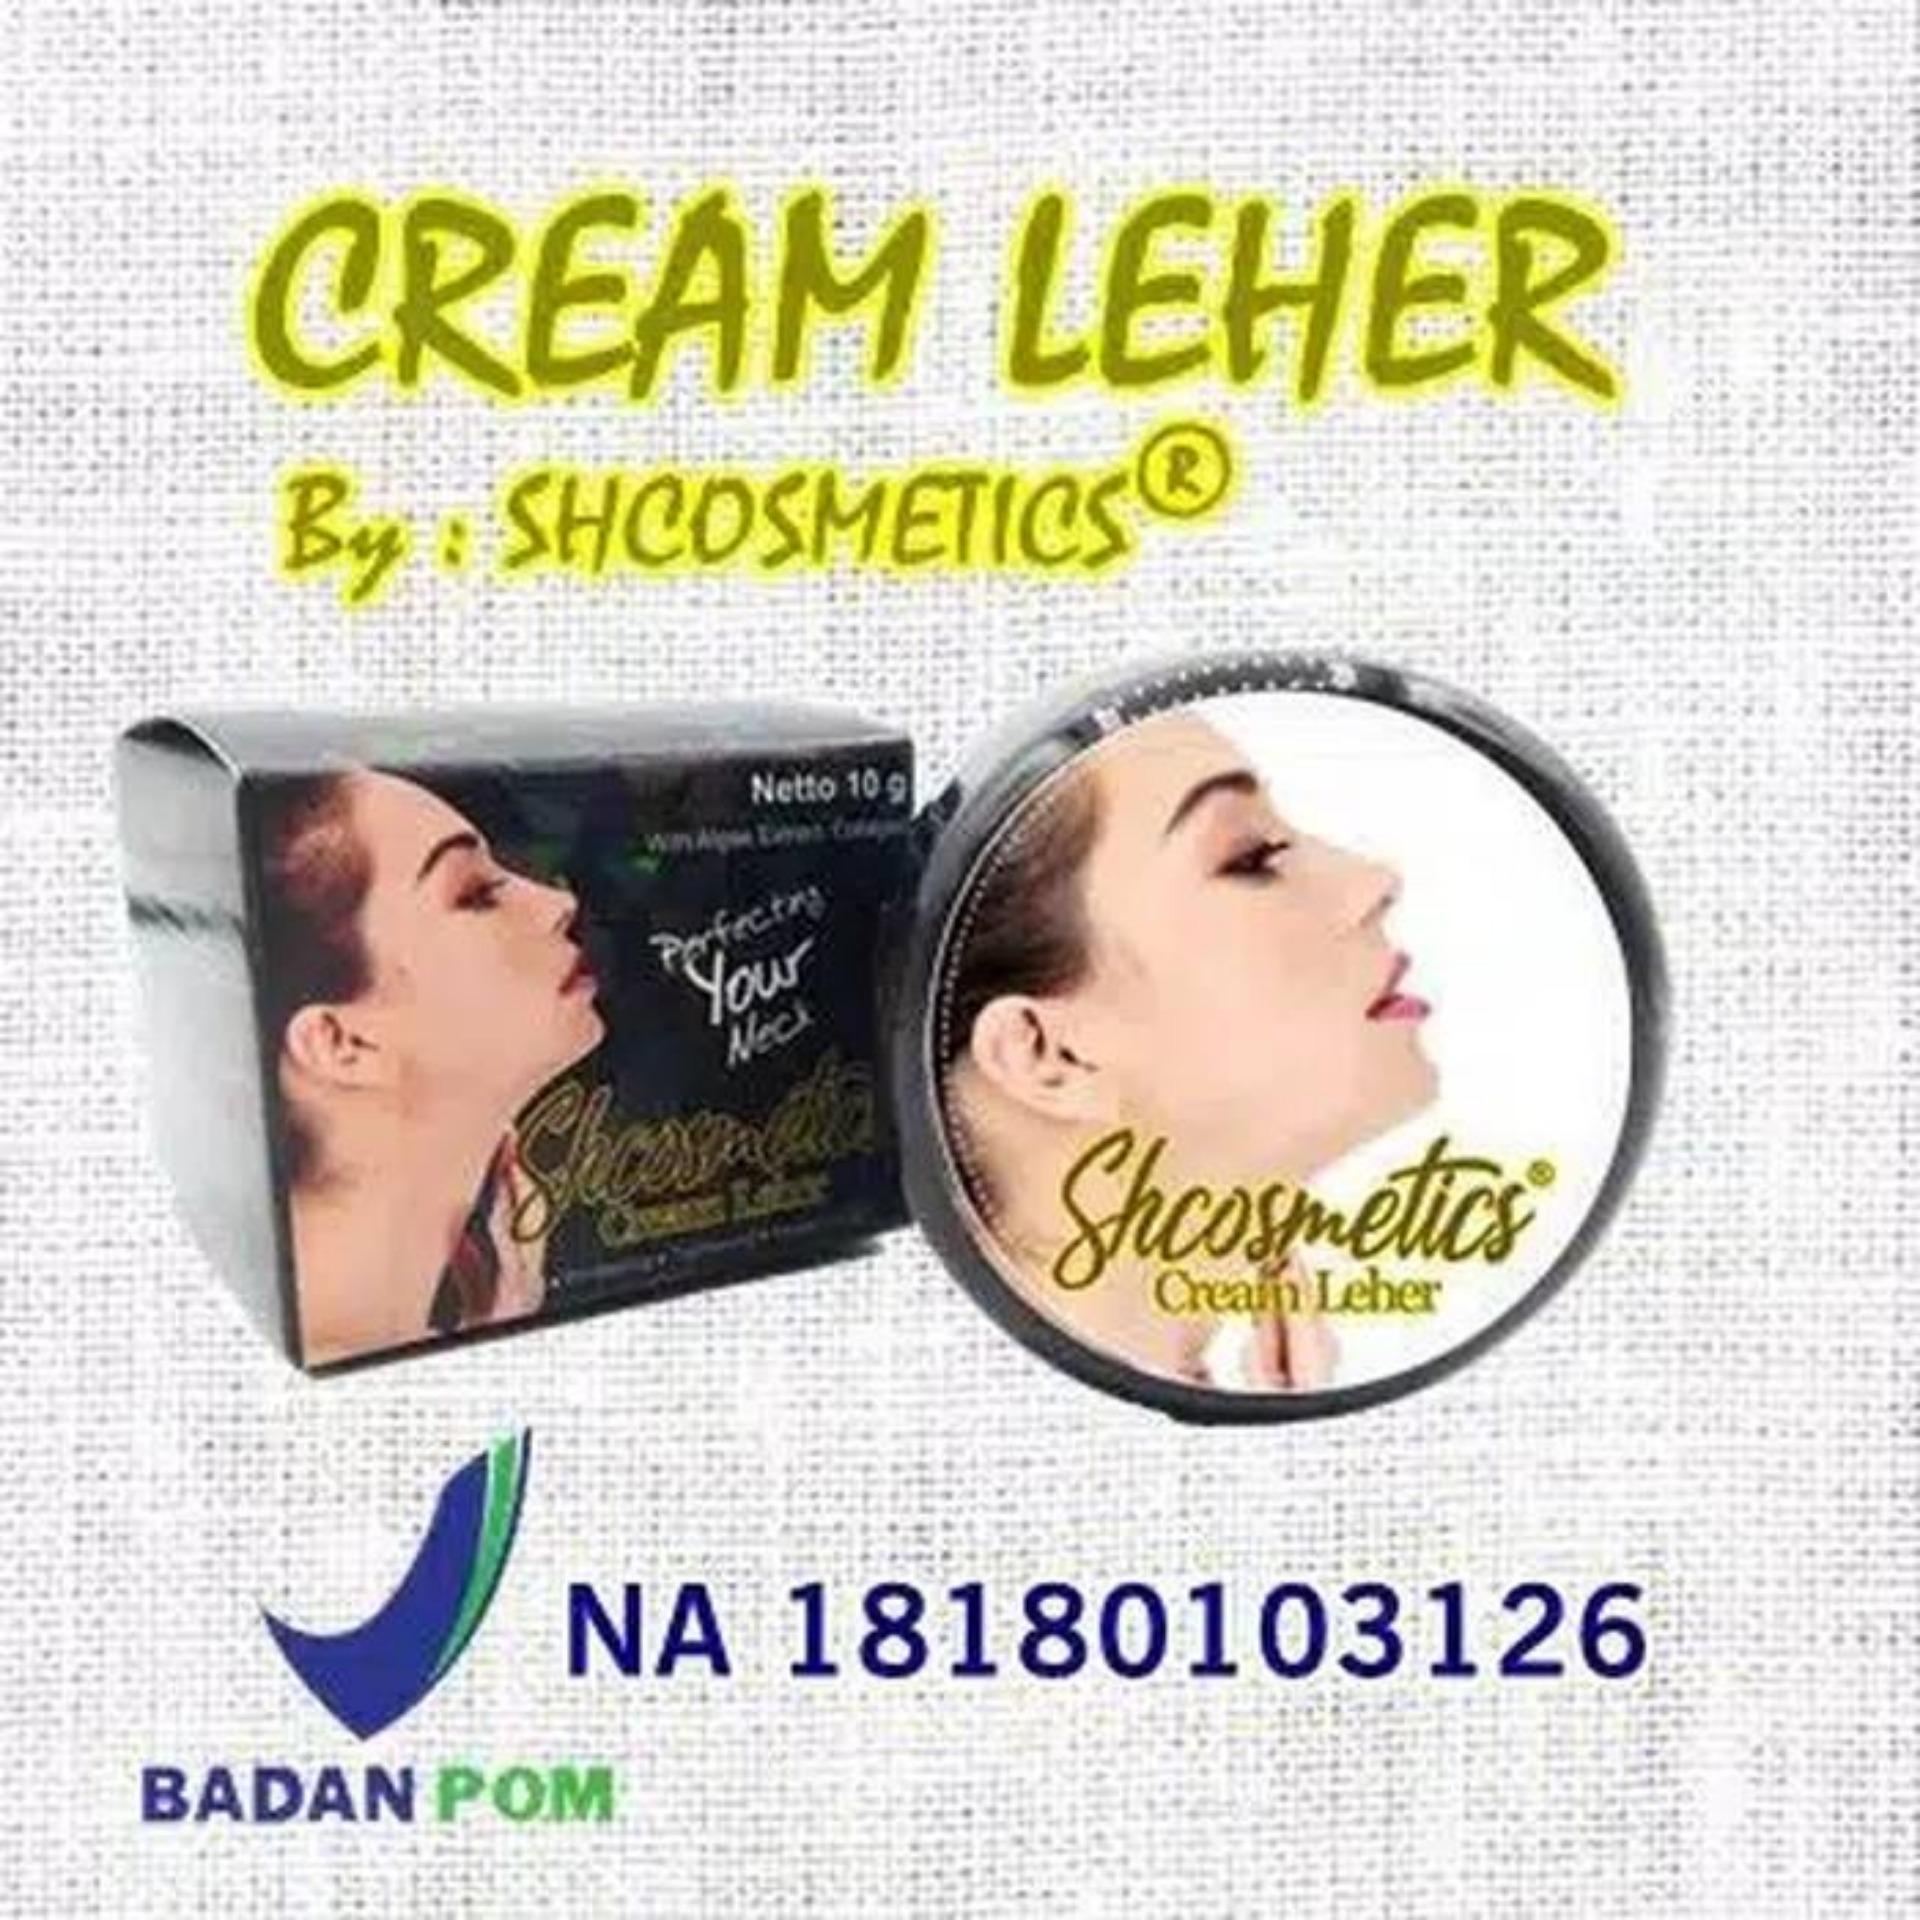 CREAM LEHER ORIGINAL BPOM BY SH COSMETICS - CREAM LEHER BPOM